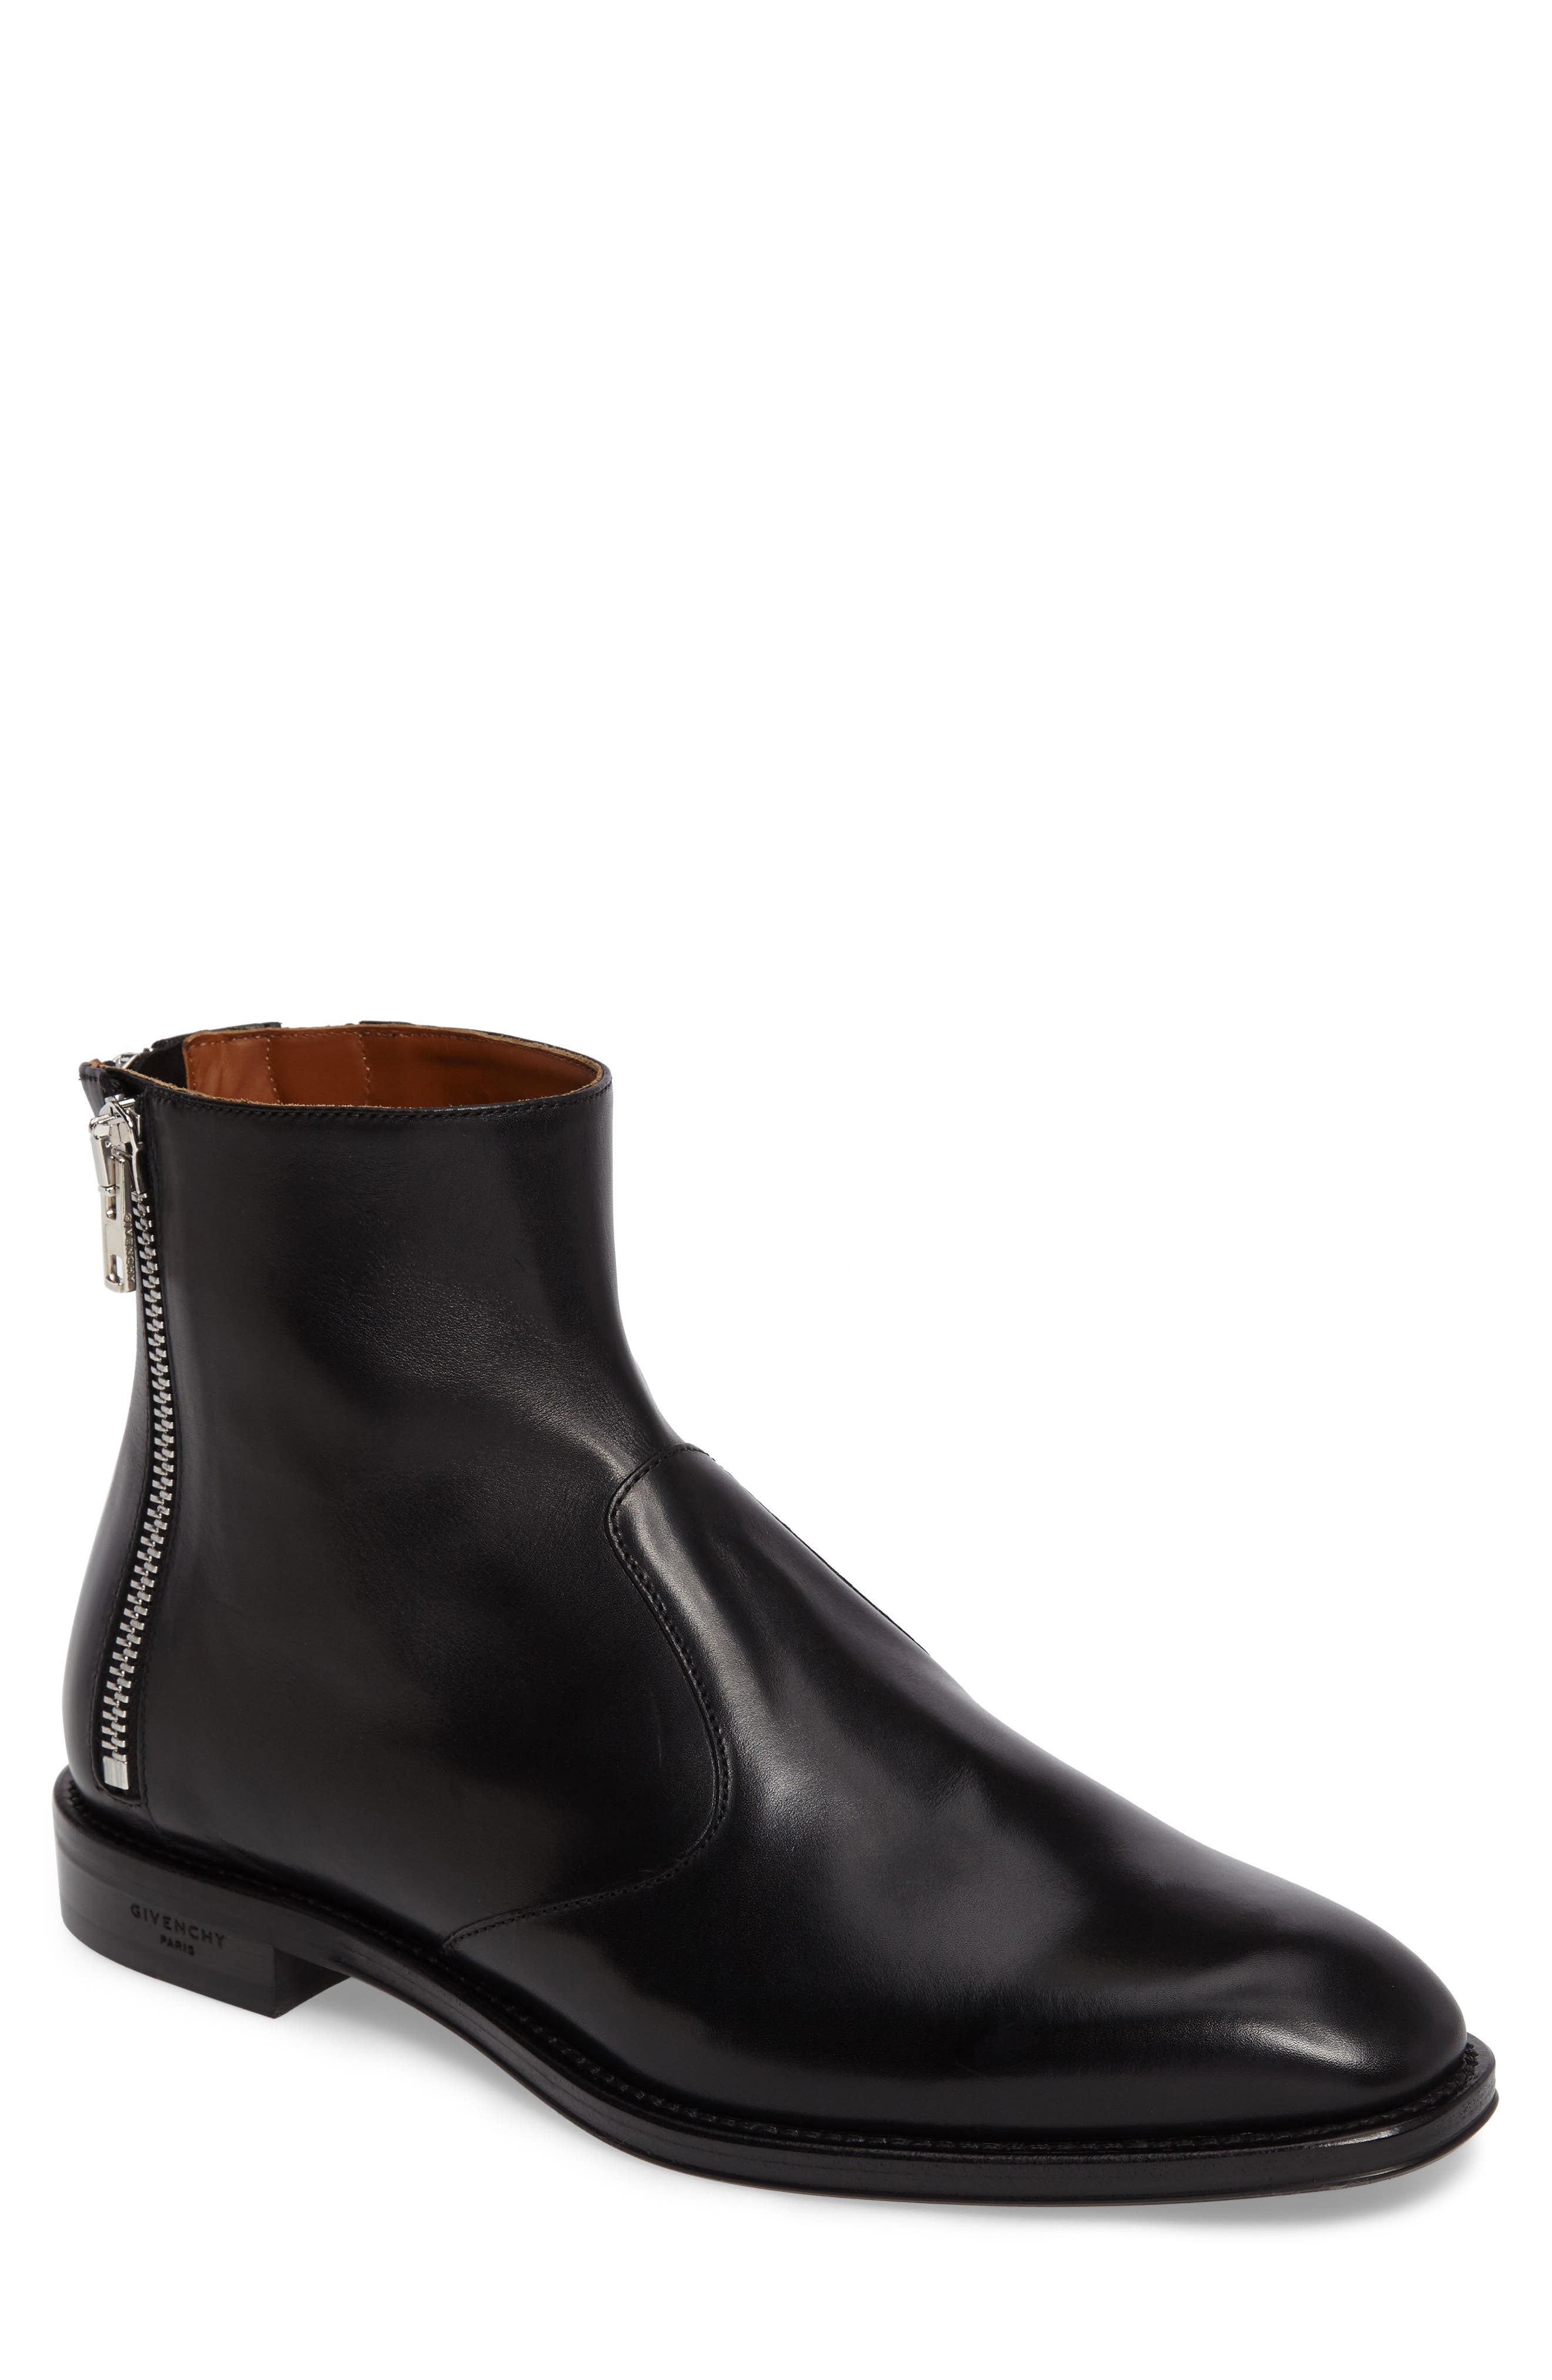 Alternate Image 1 Selected - Givenchy Three-Zipper Boot (Men)